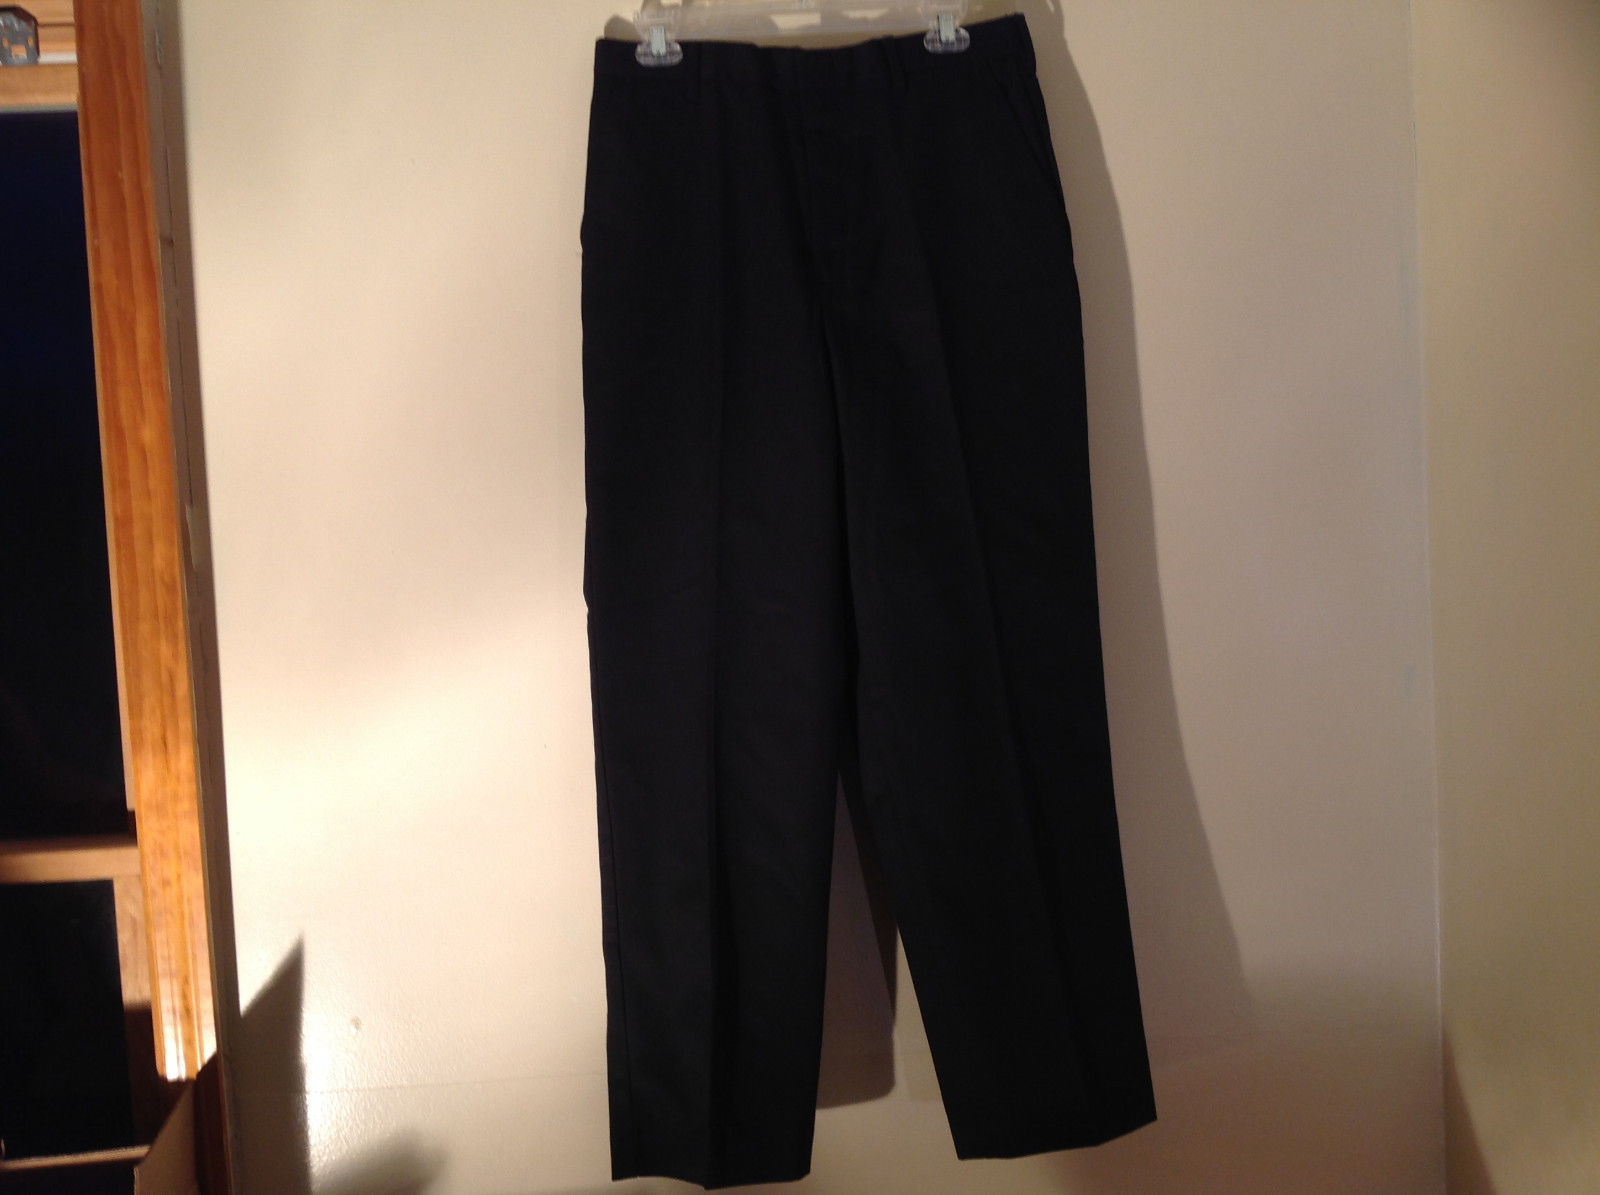 New Black Dress Pants By Edwards Tag Still Attached 4 Pockets Belt Loops Size 32